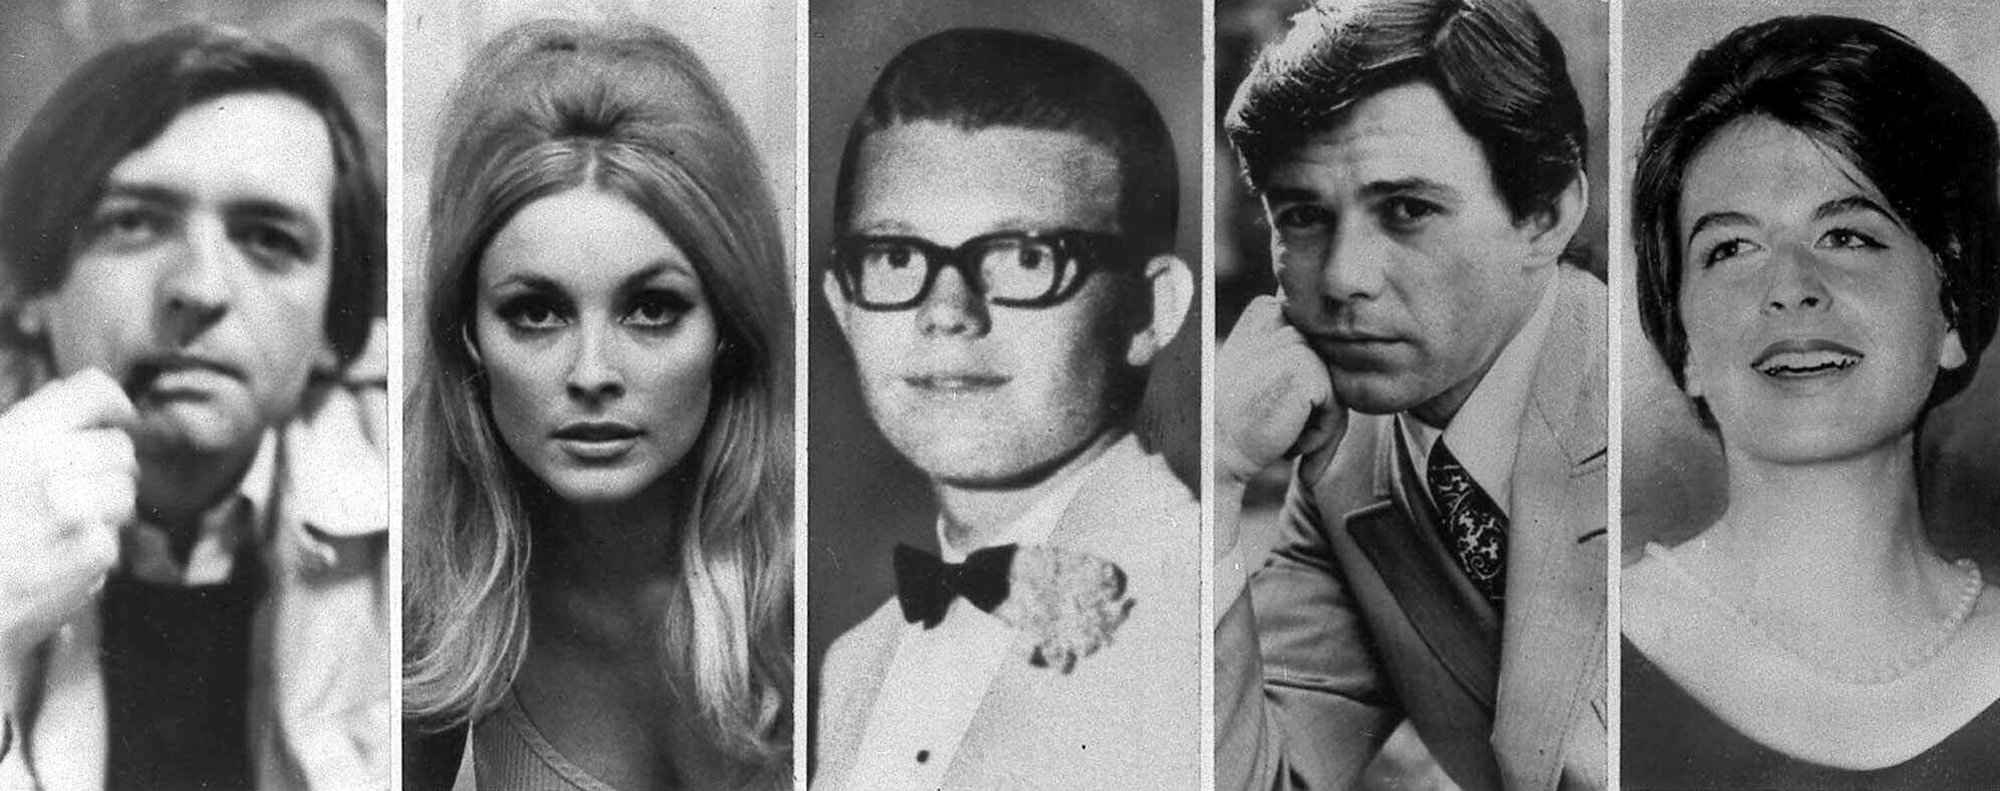 Key figures in Manson case: Cult disciples, rich and famous